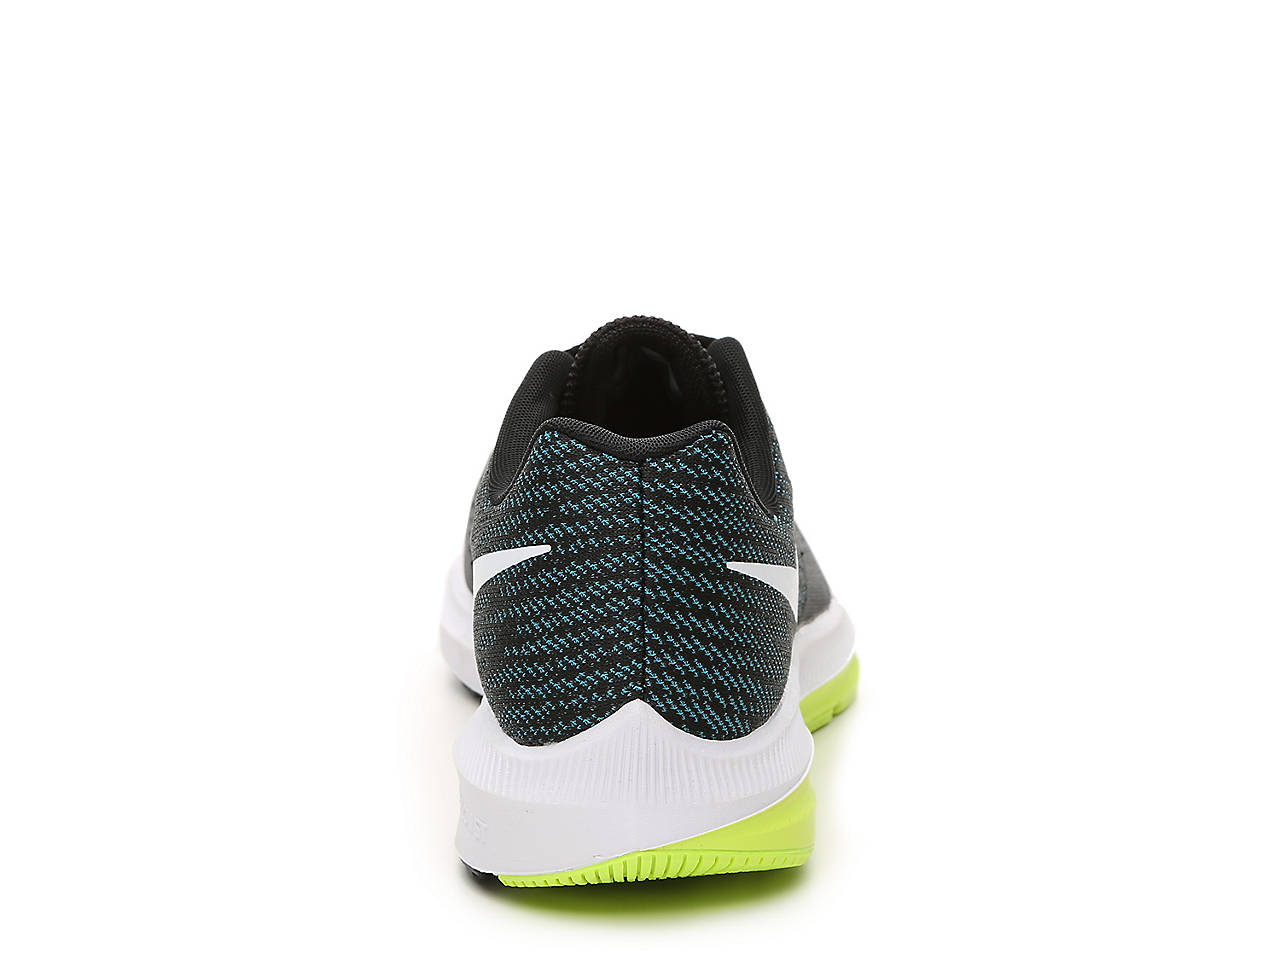 bc765141ce3 Nike Air Zoom Winflo 4 Sizing Boots Shoes